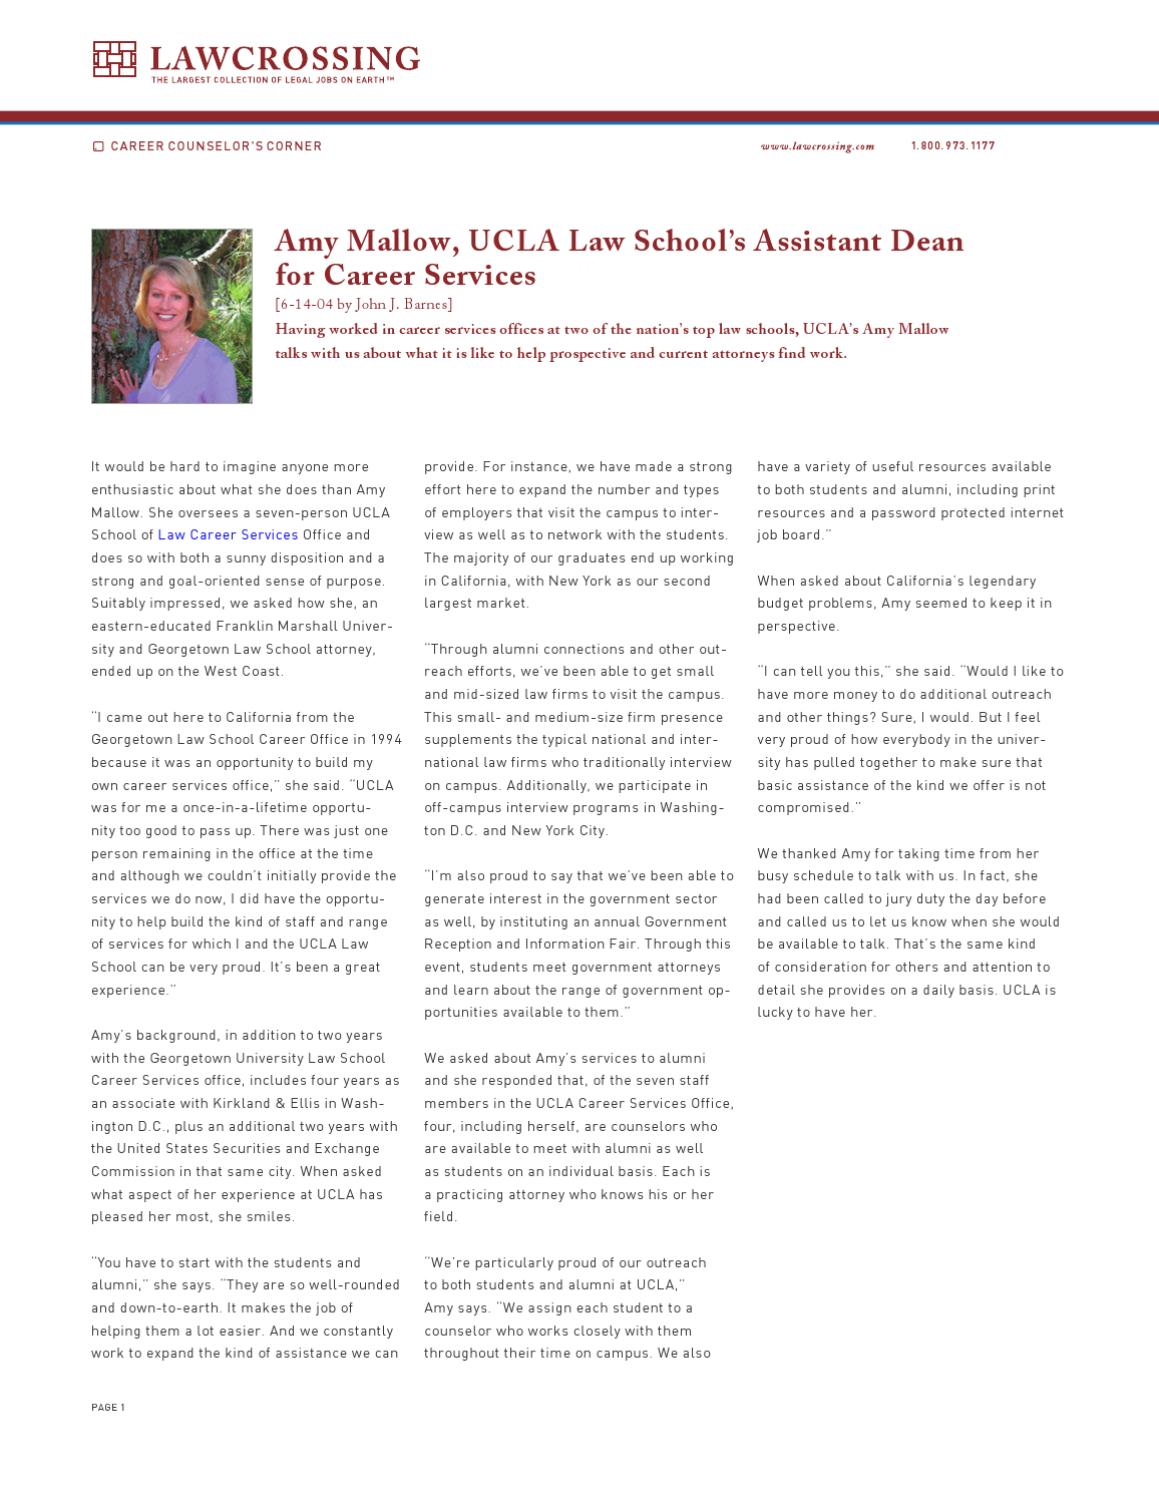 Amy Mallow, UCLA Law School's Assistant Dean for Career